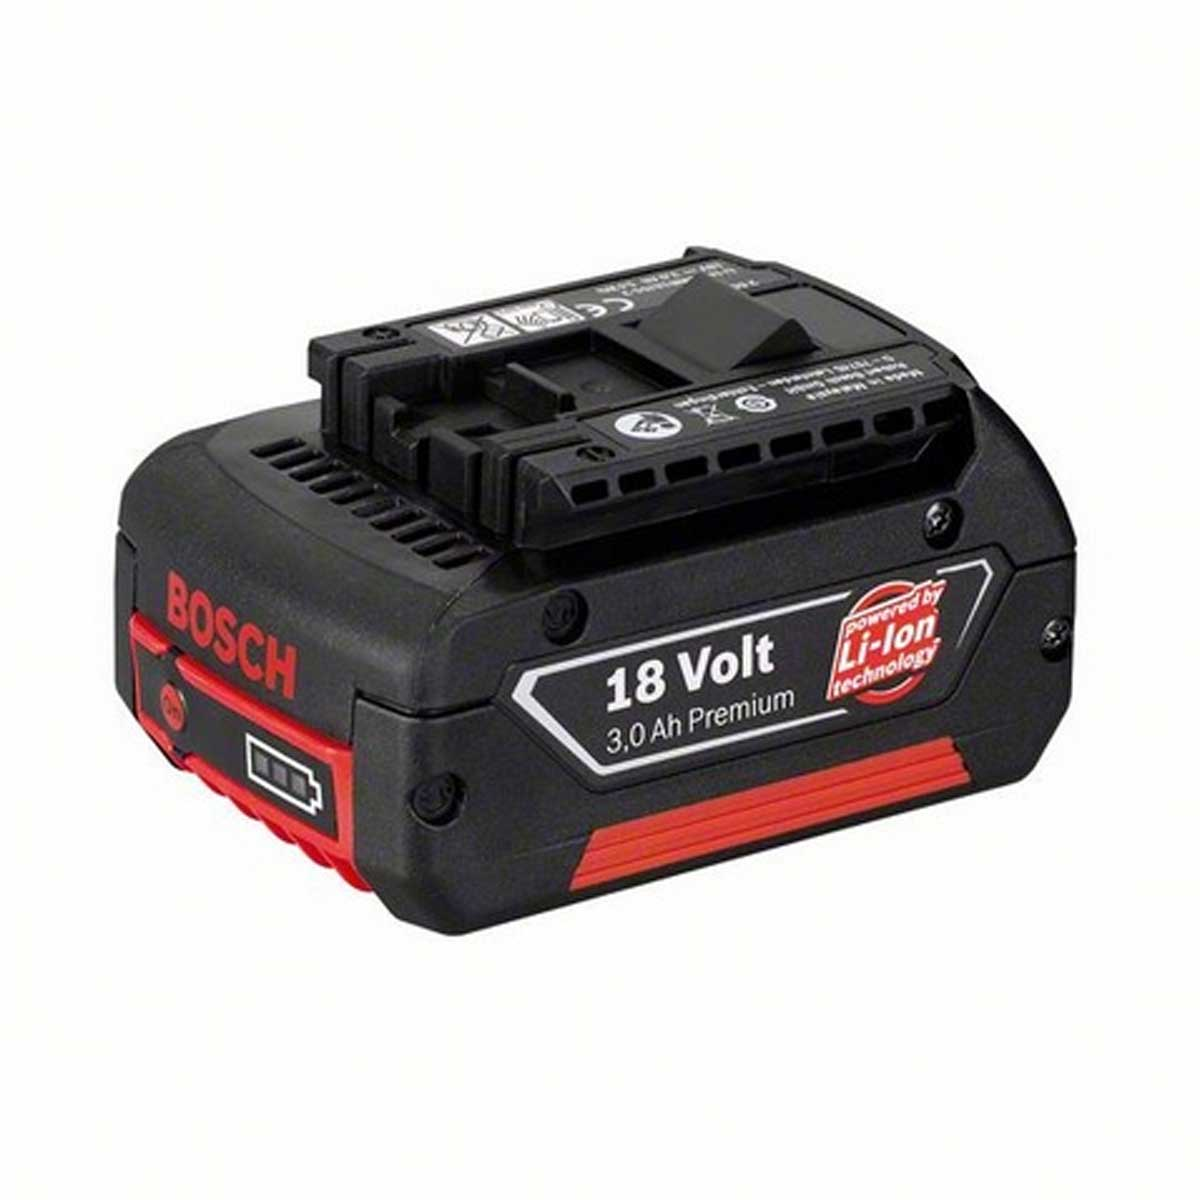 BOSCH 18V 3.0AH PREMIUM LI-ION BATTERY WITH CHARGE LEVEL INDICATION